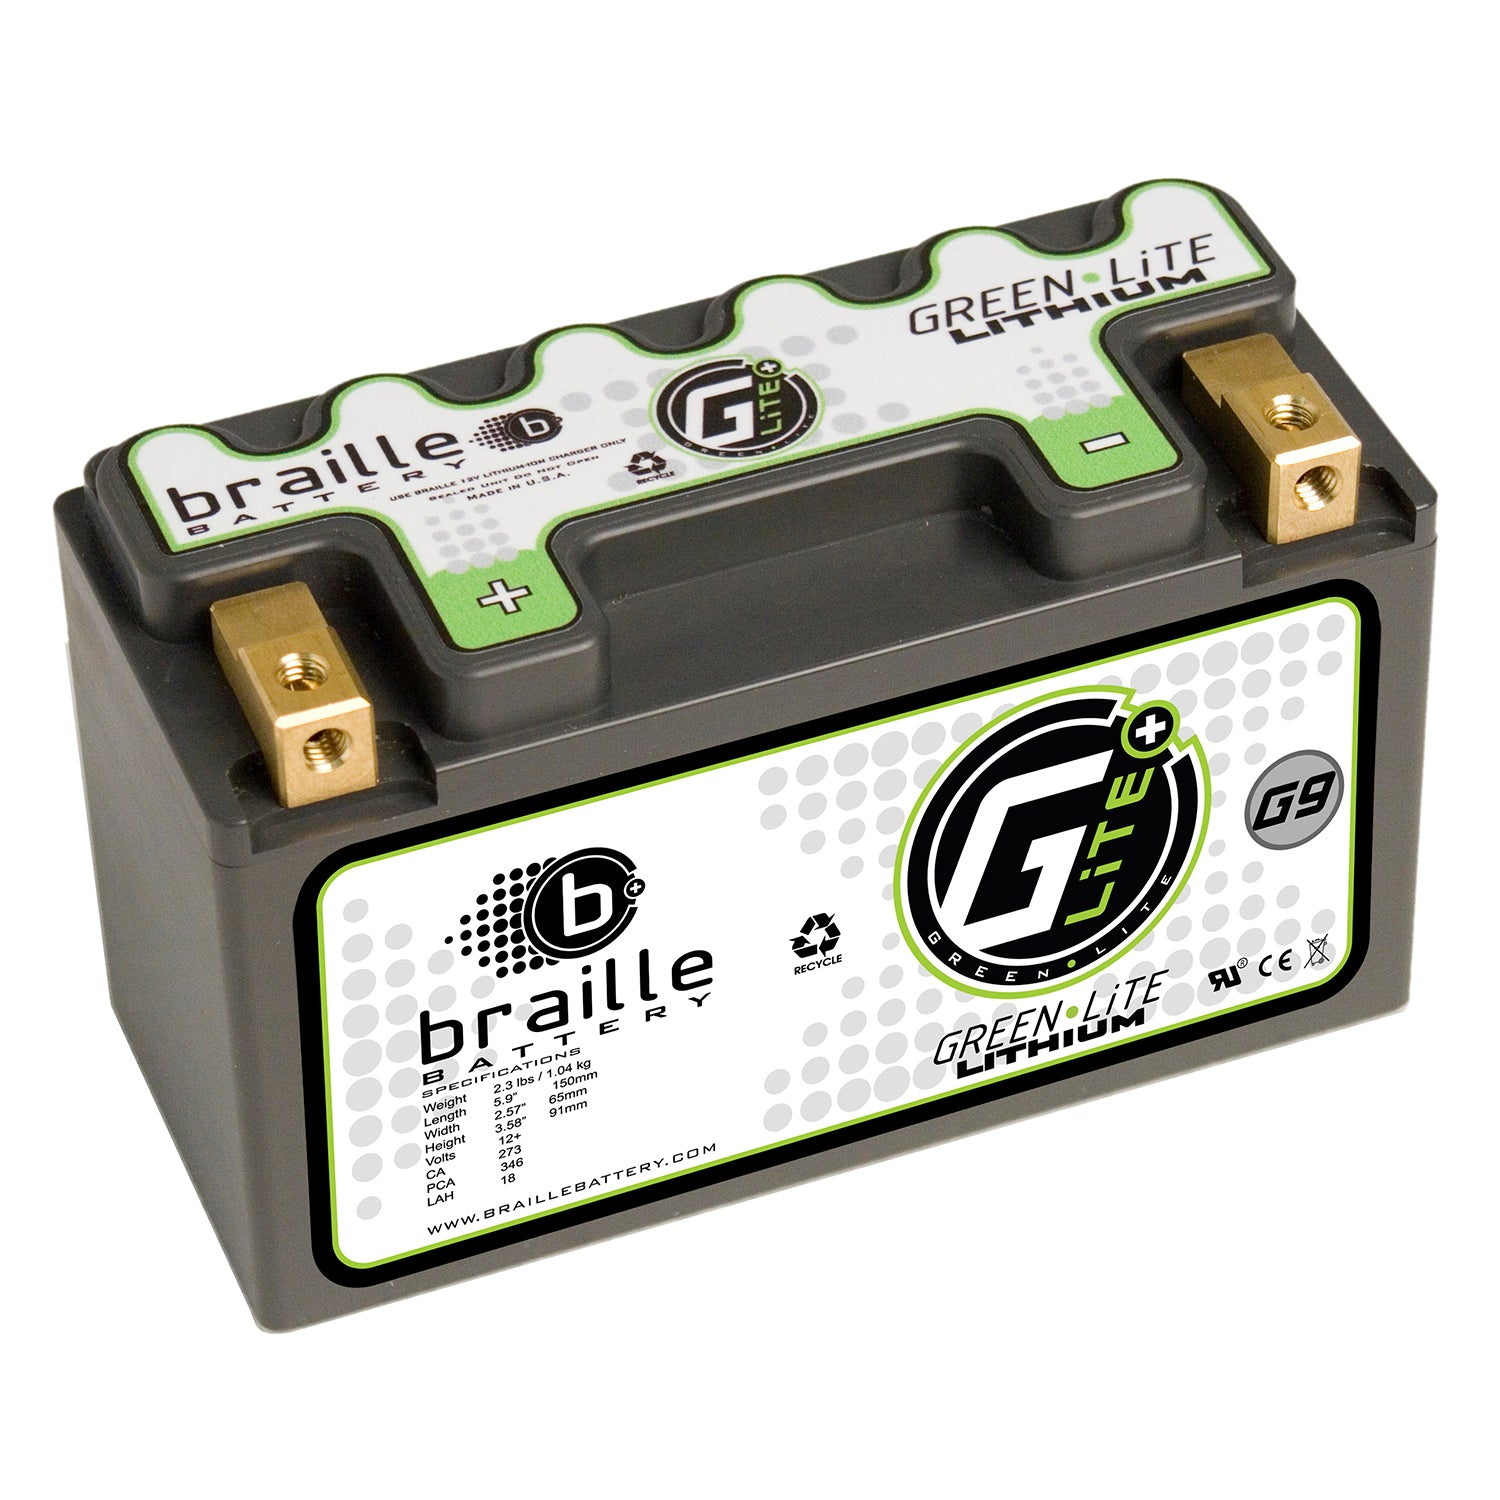 G9 - GreenLite lithium battery